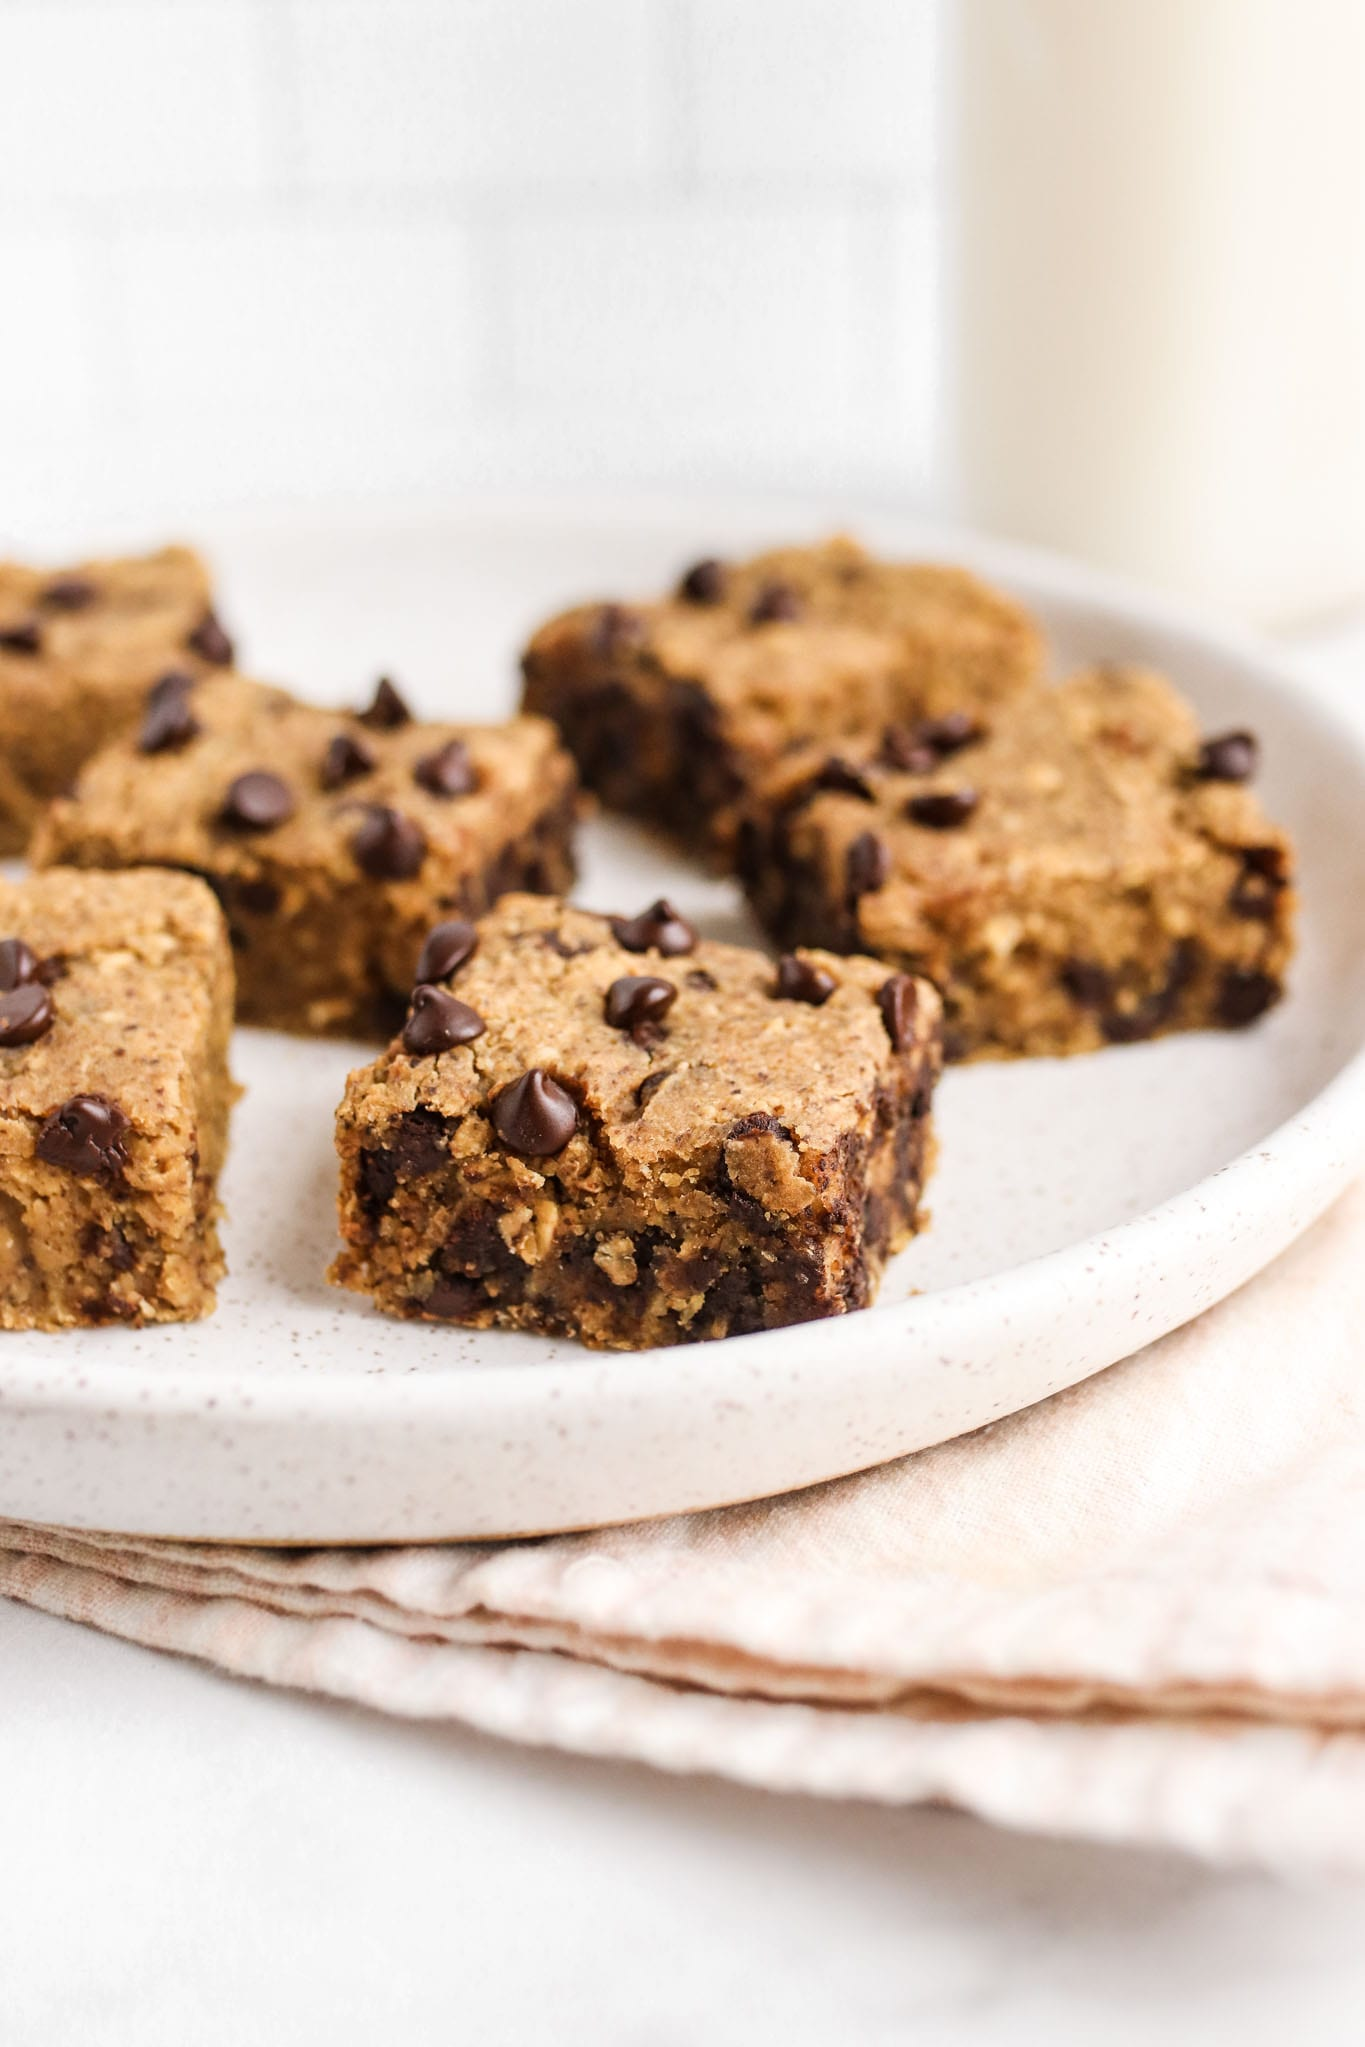 Chocolate Chip Chickpea Blondie Veggiekins